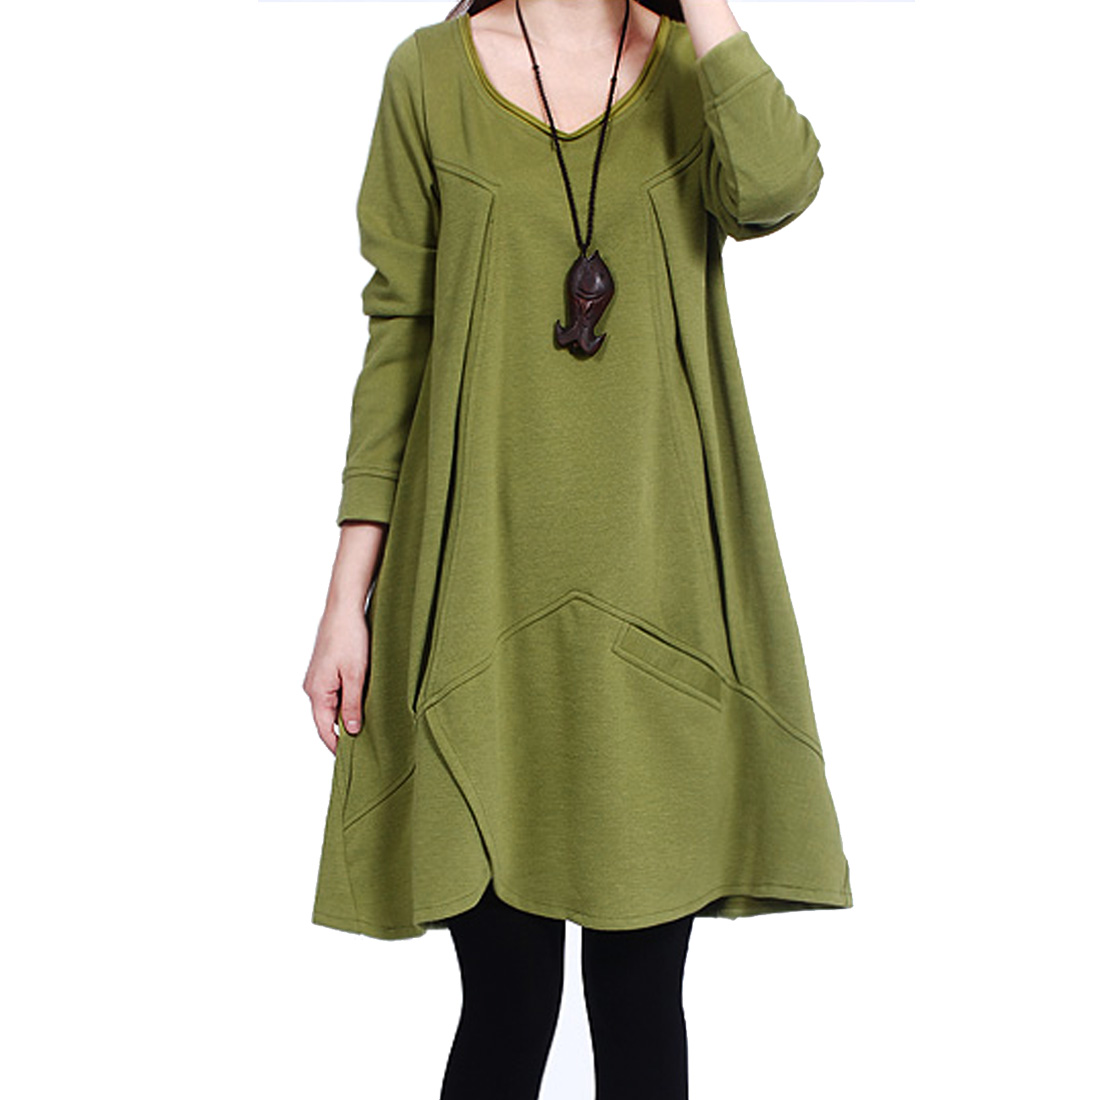 Ladies Long Sleeve Ruched Design Autumn Tunic Top Olive S